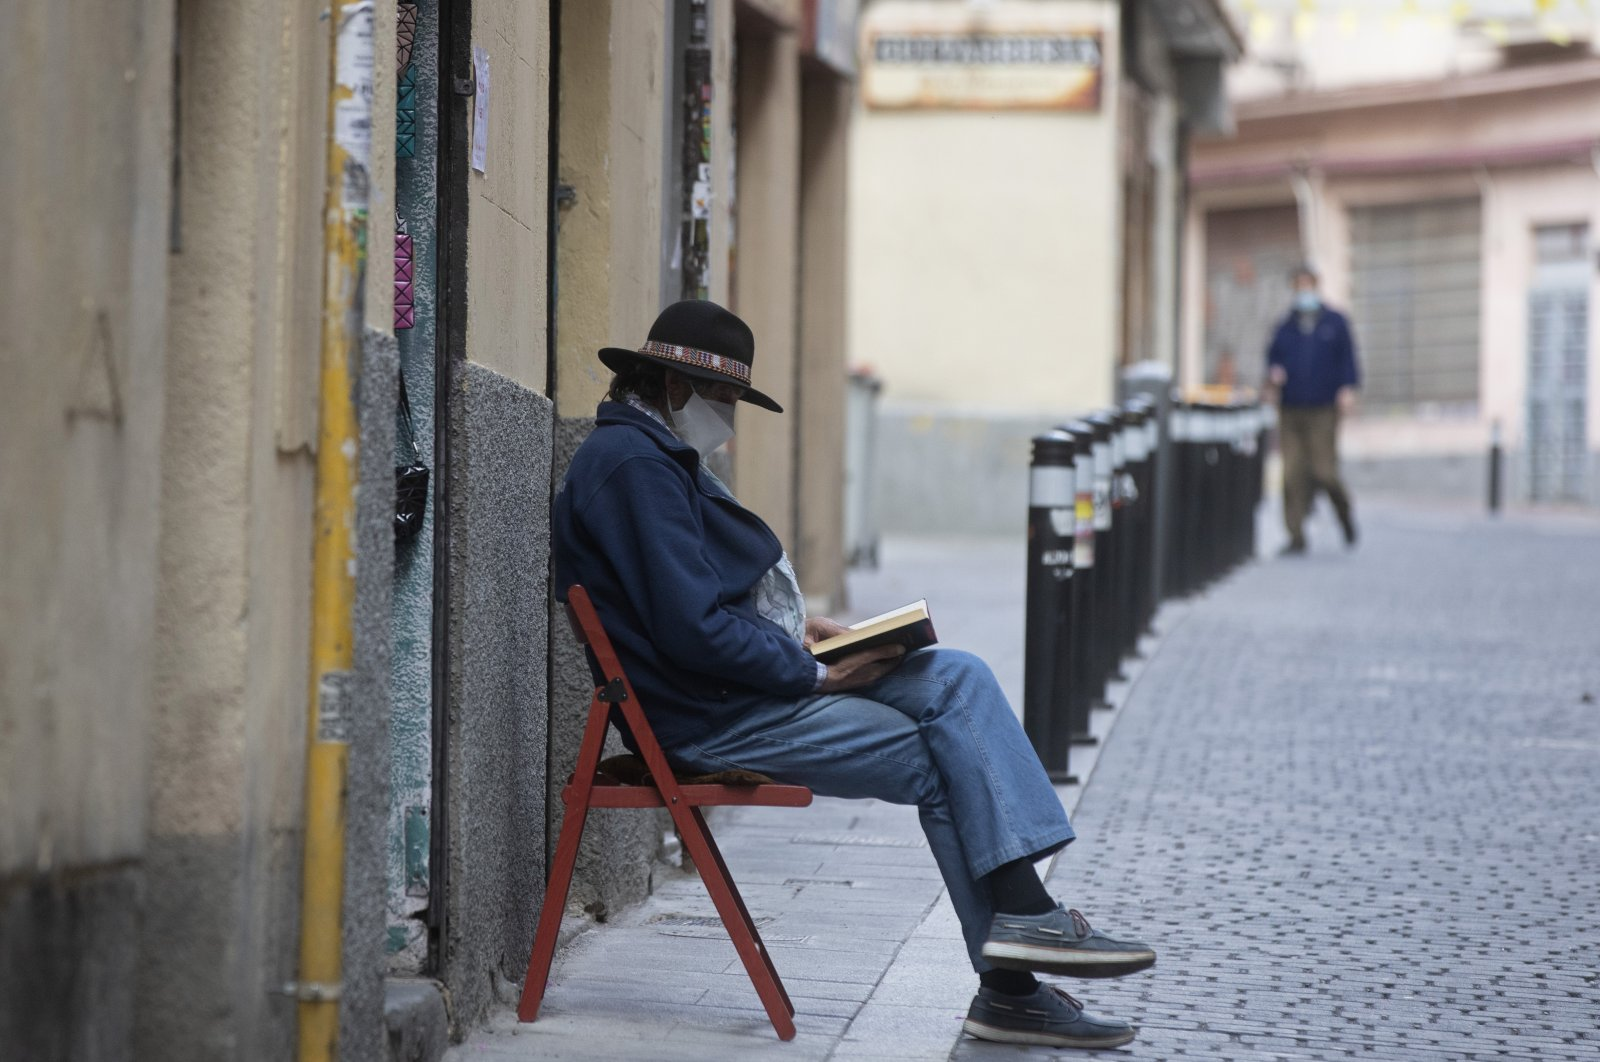 A man wearing a face mask to protect against coronavirus sits and waits for customers outside a small shop while reading a book, Madrid, Spain, May 16, 2020. (AP Photo)